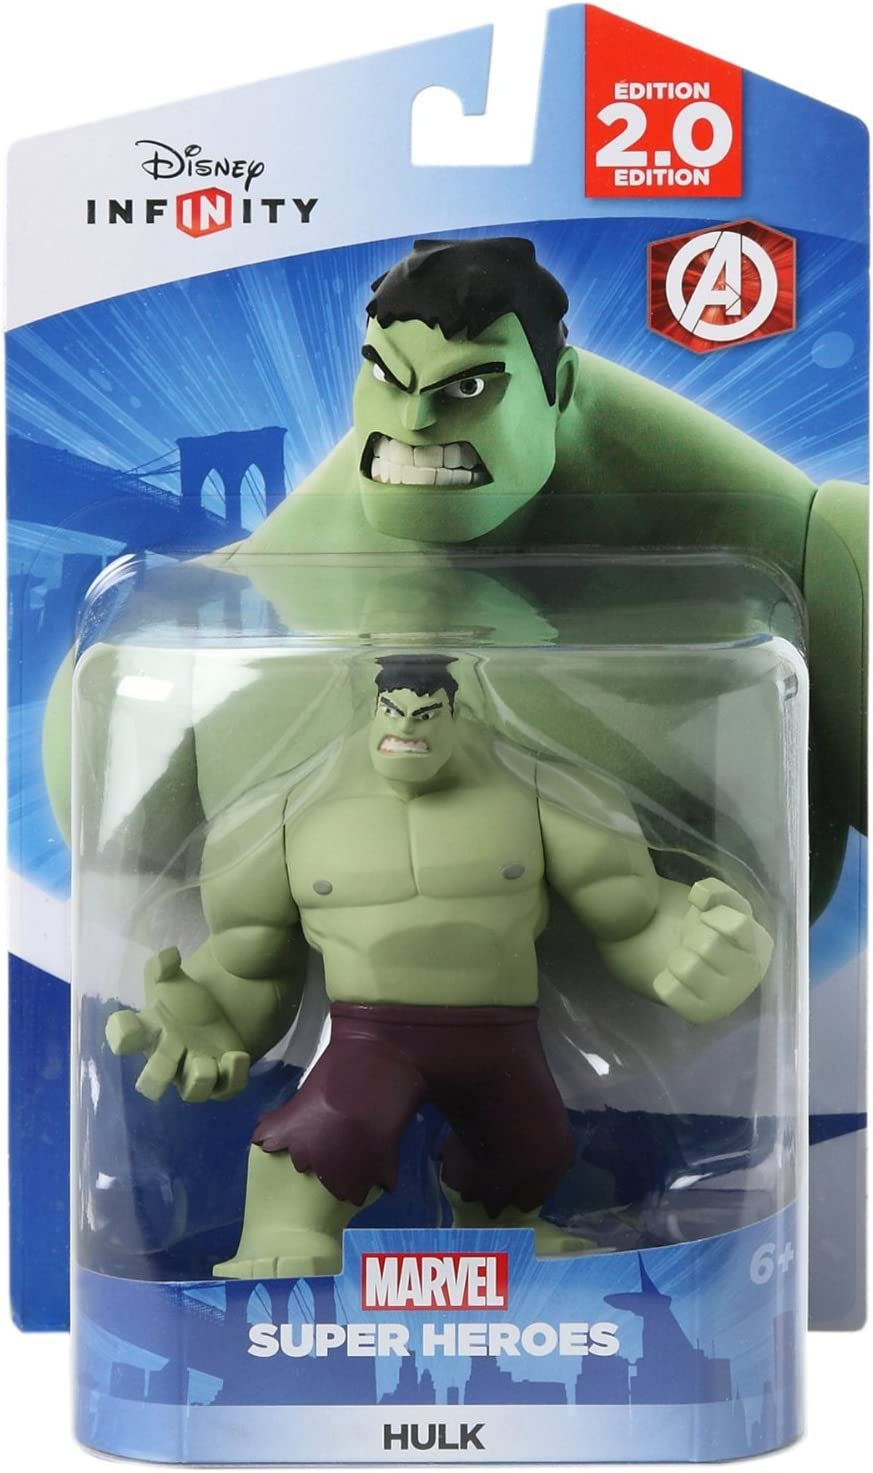 Disney Infinity: Marvel Super Heroes (2.0 Edition)  Hulk